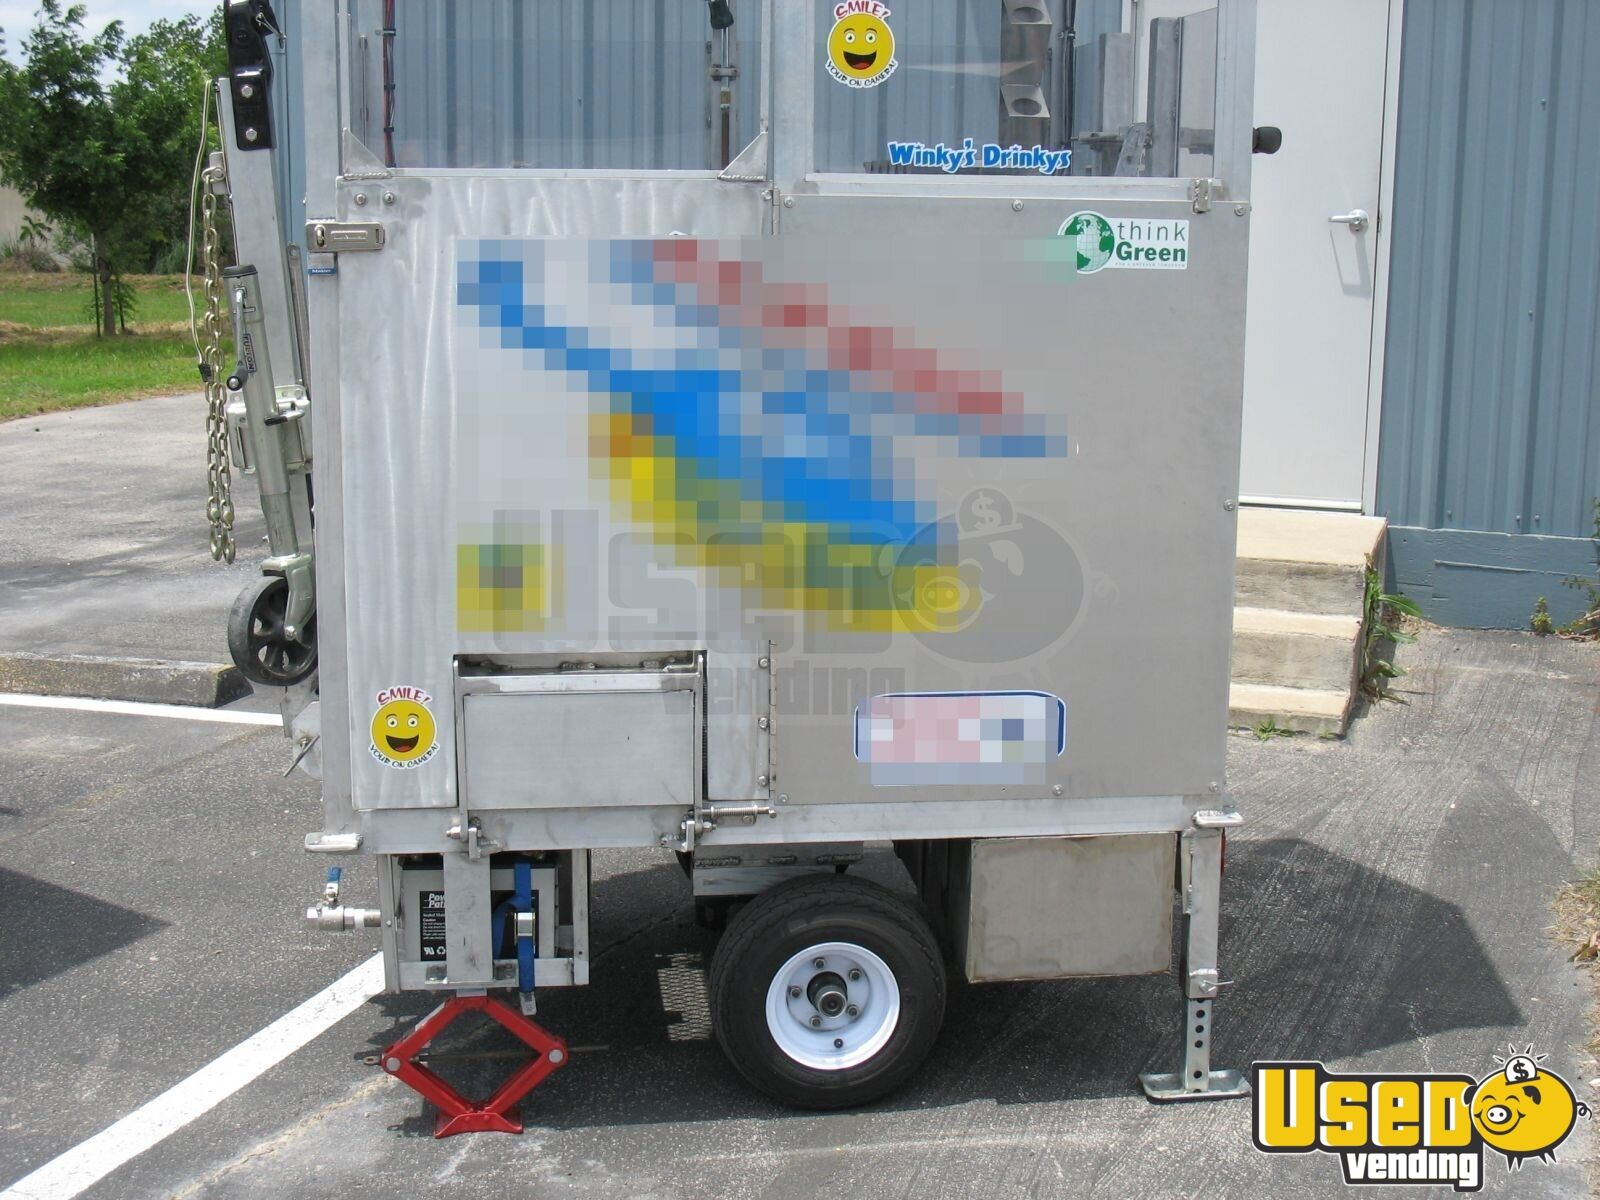 2009 Top Gun Top Dog Self Sufficient Mobile, Model Slt Cart 6 Texas for Sale - 6